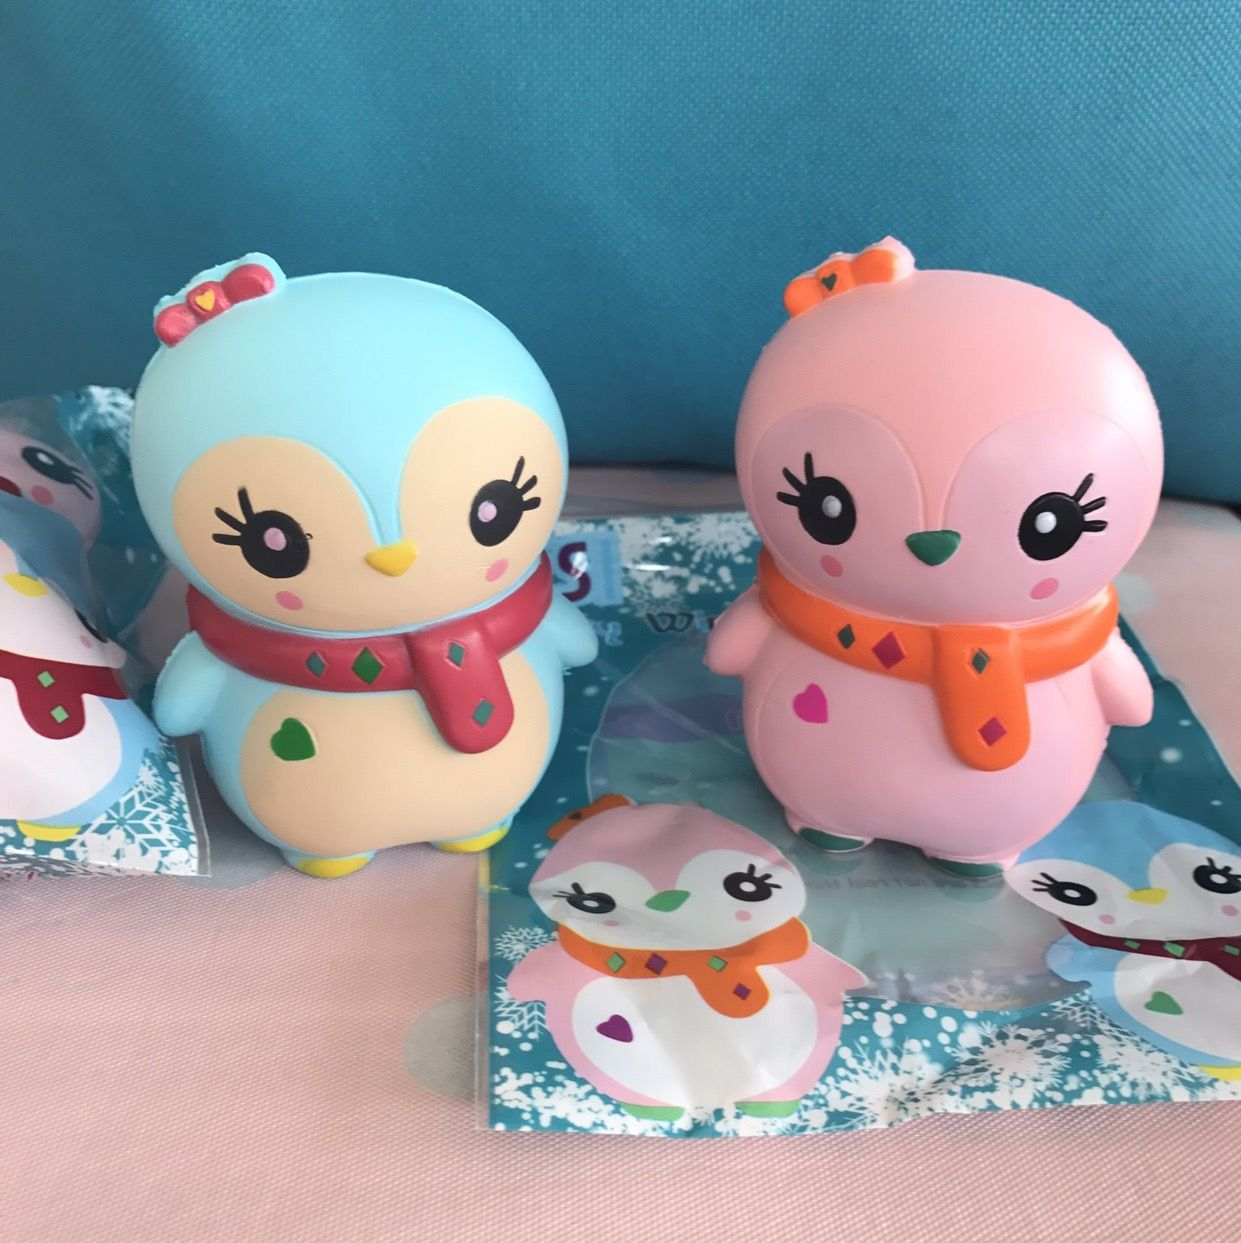 Squishy Toys With Slime In It : Rare* Chawasampeng Jumbo Melon squishy *scented* licensed Squishies a Pinterest Kawaii ...